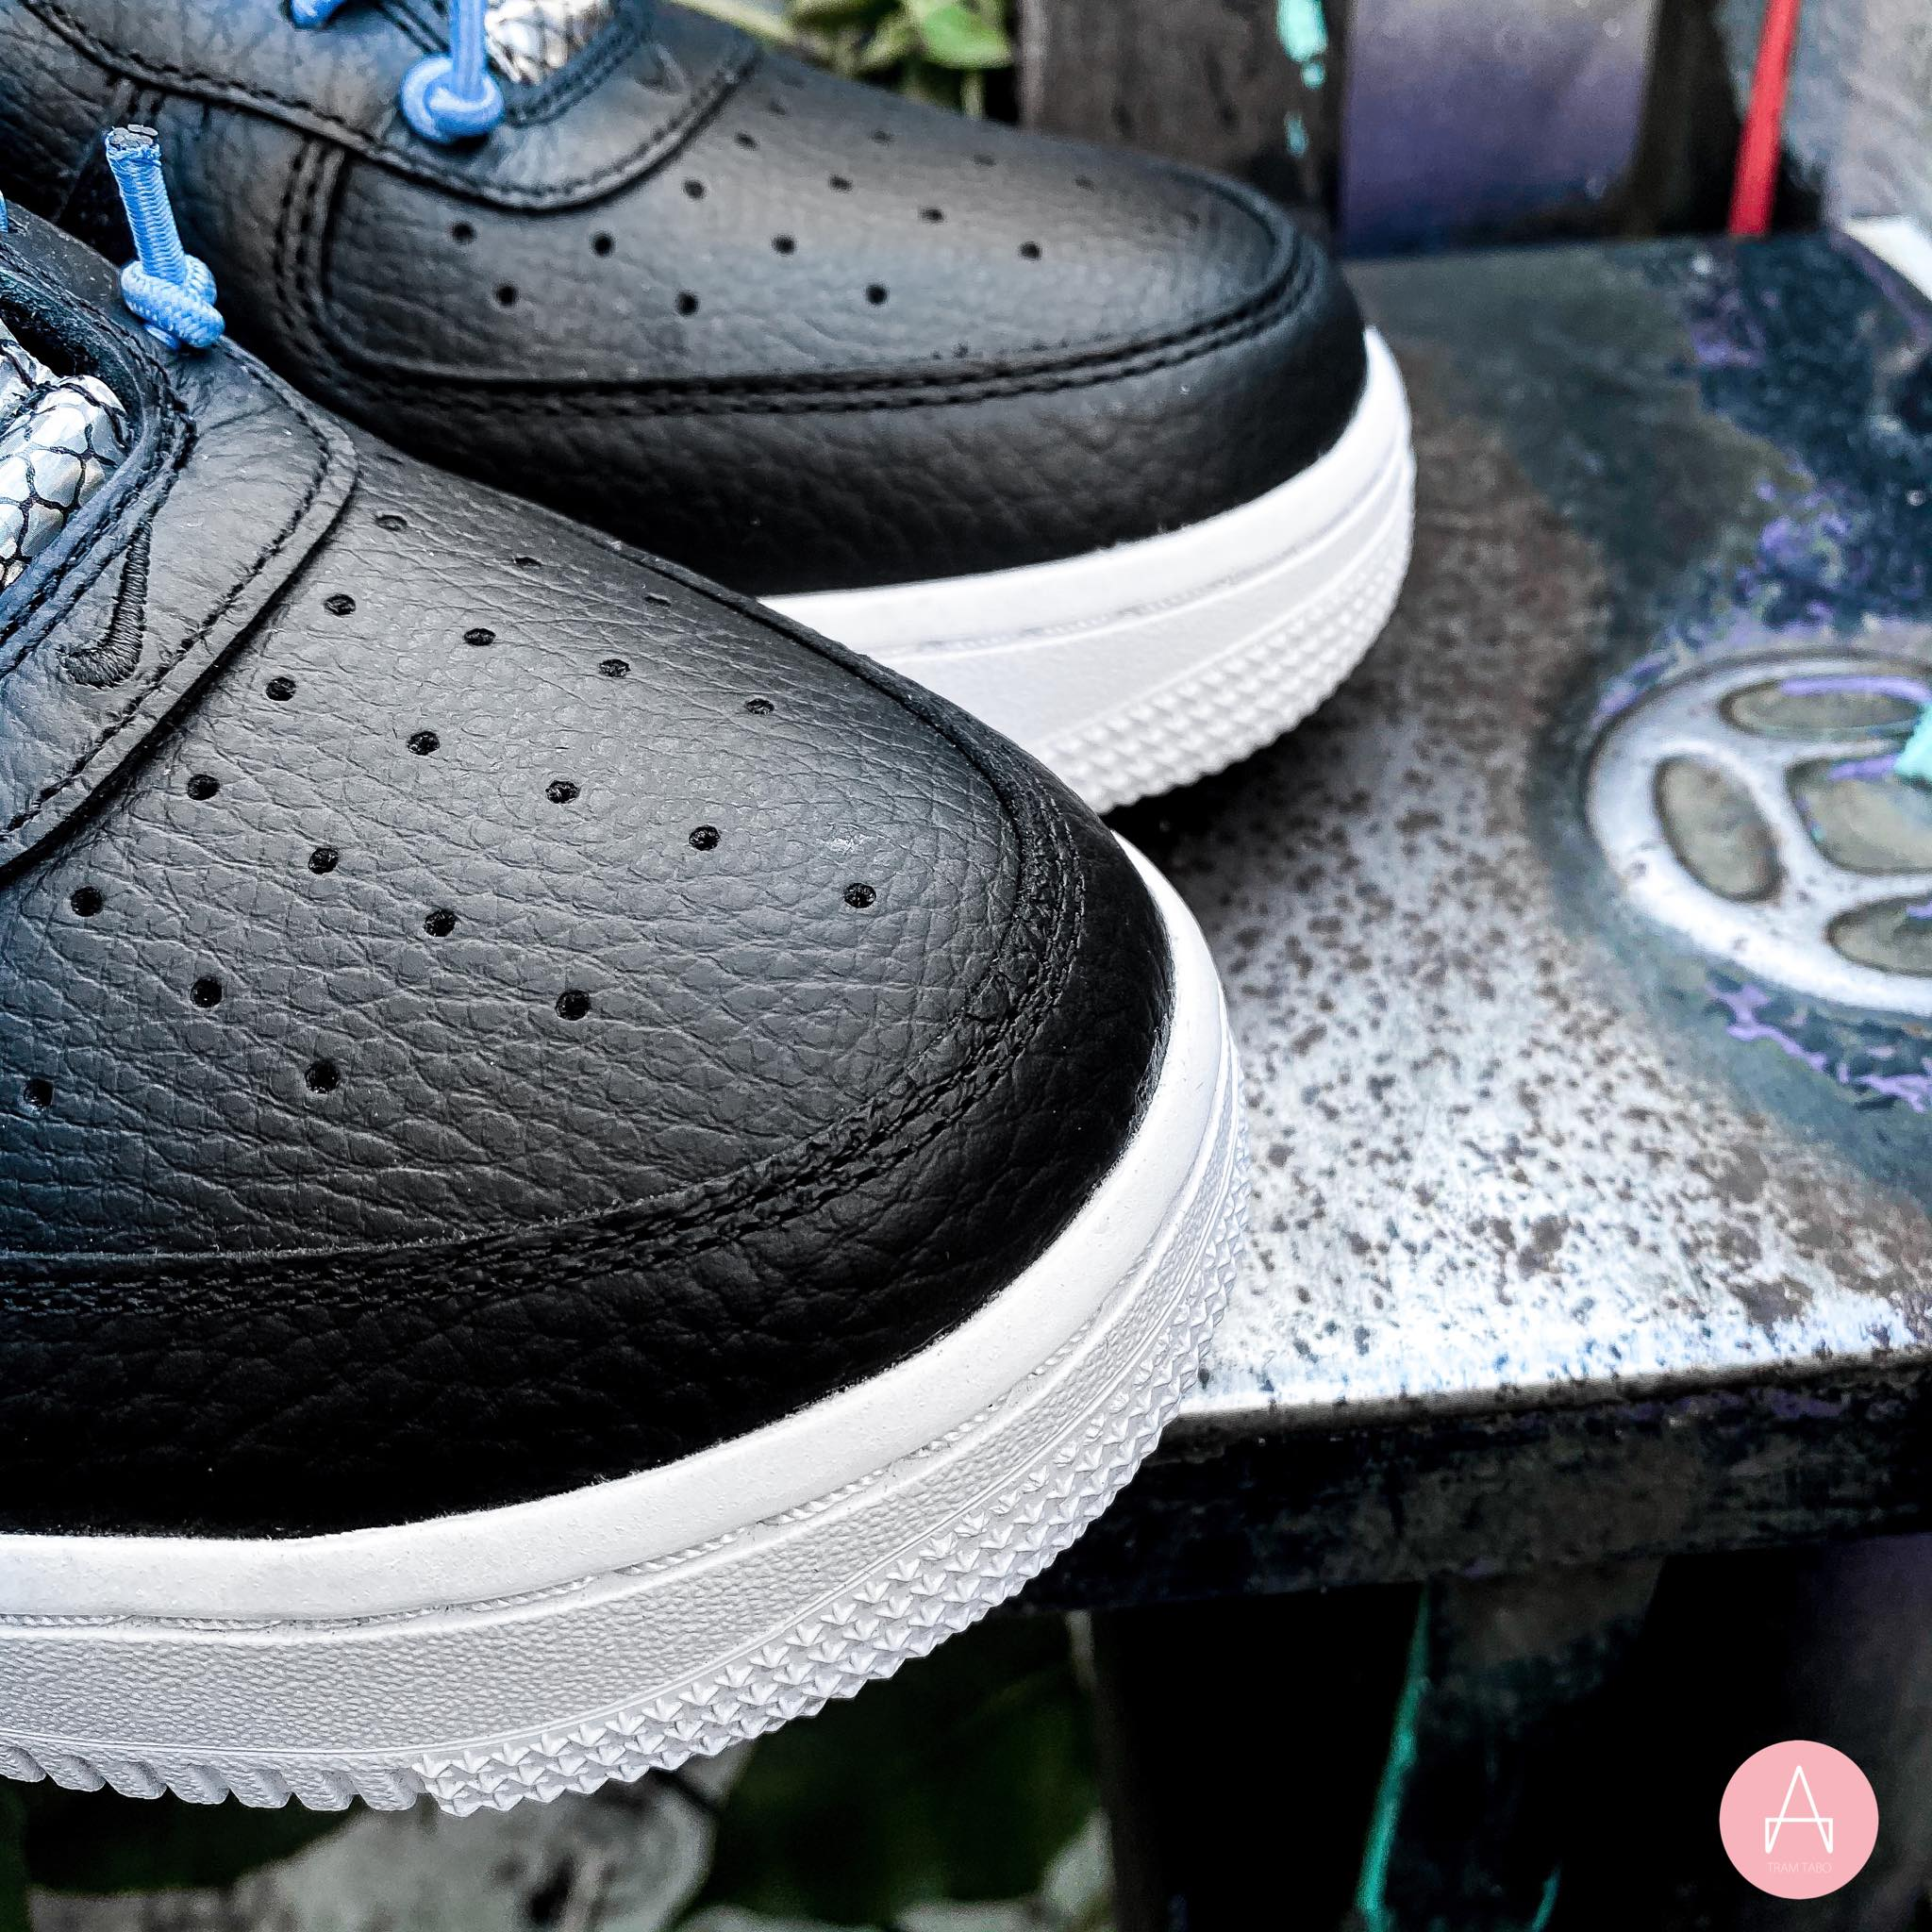 [898889-015] W NIKE AIR FORCE 1 '07 LUX 'BLACK REFLECTIVE'